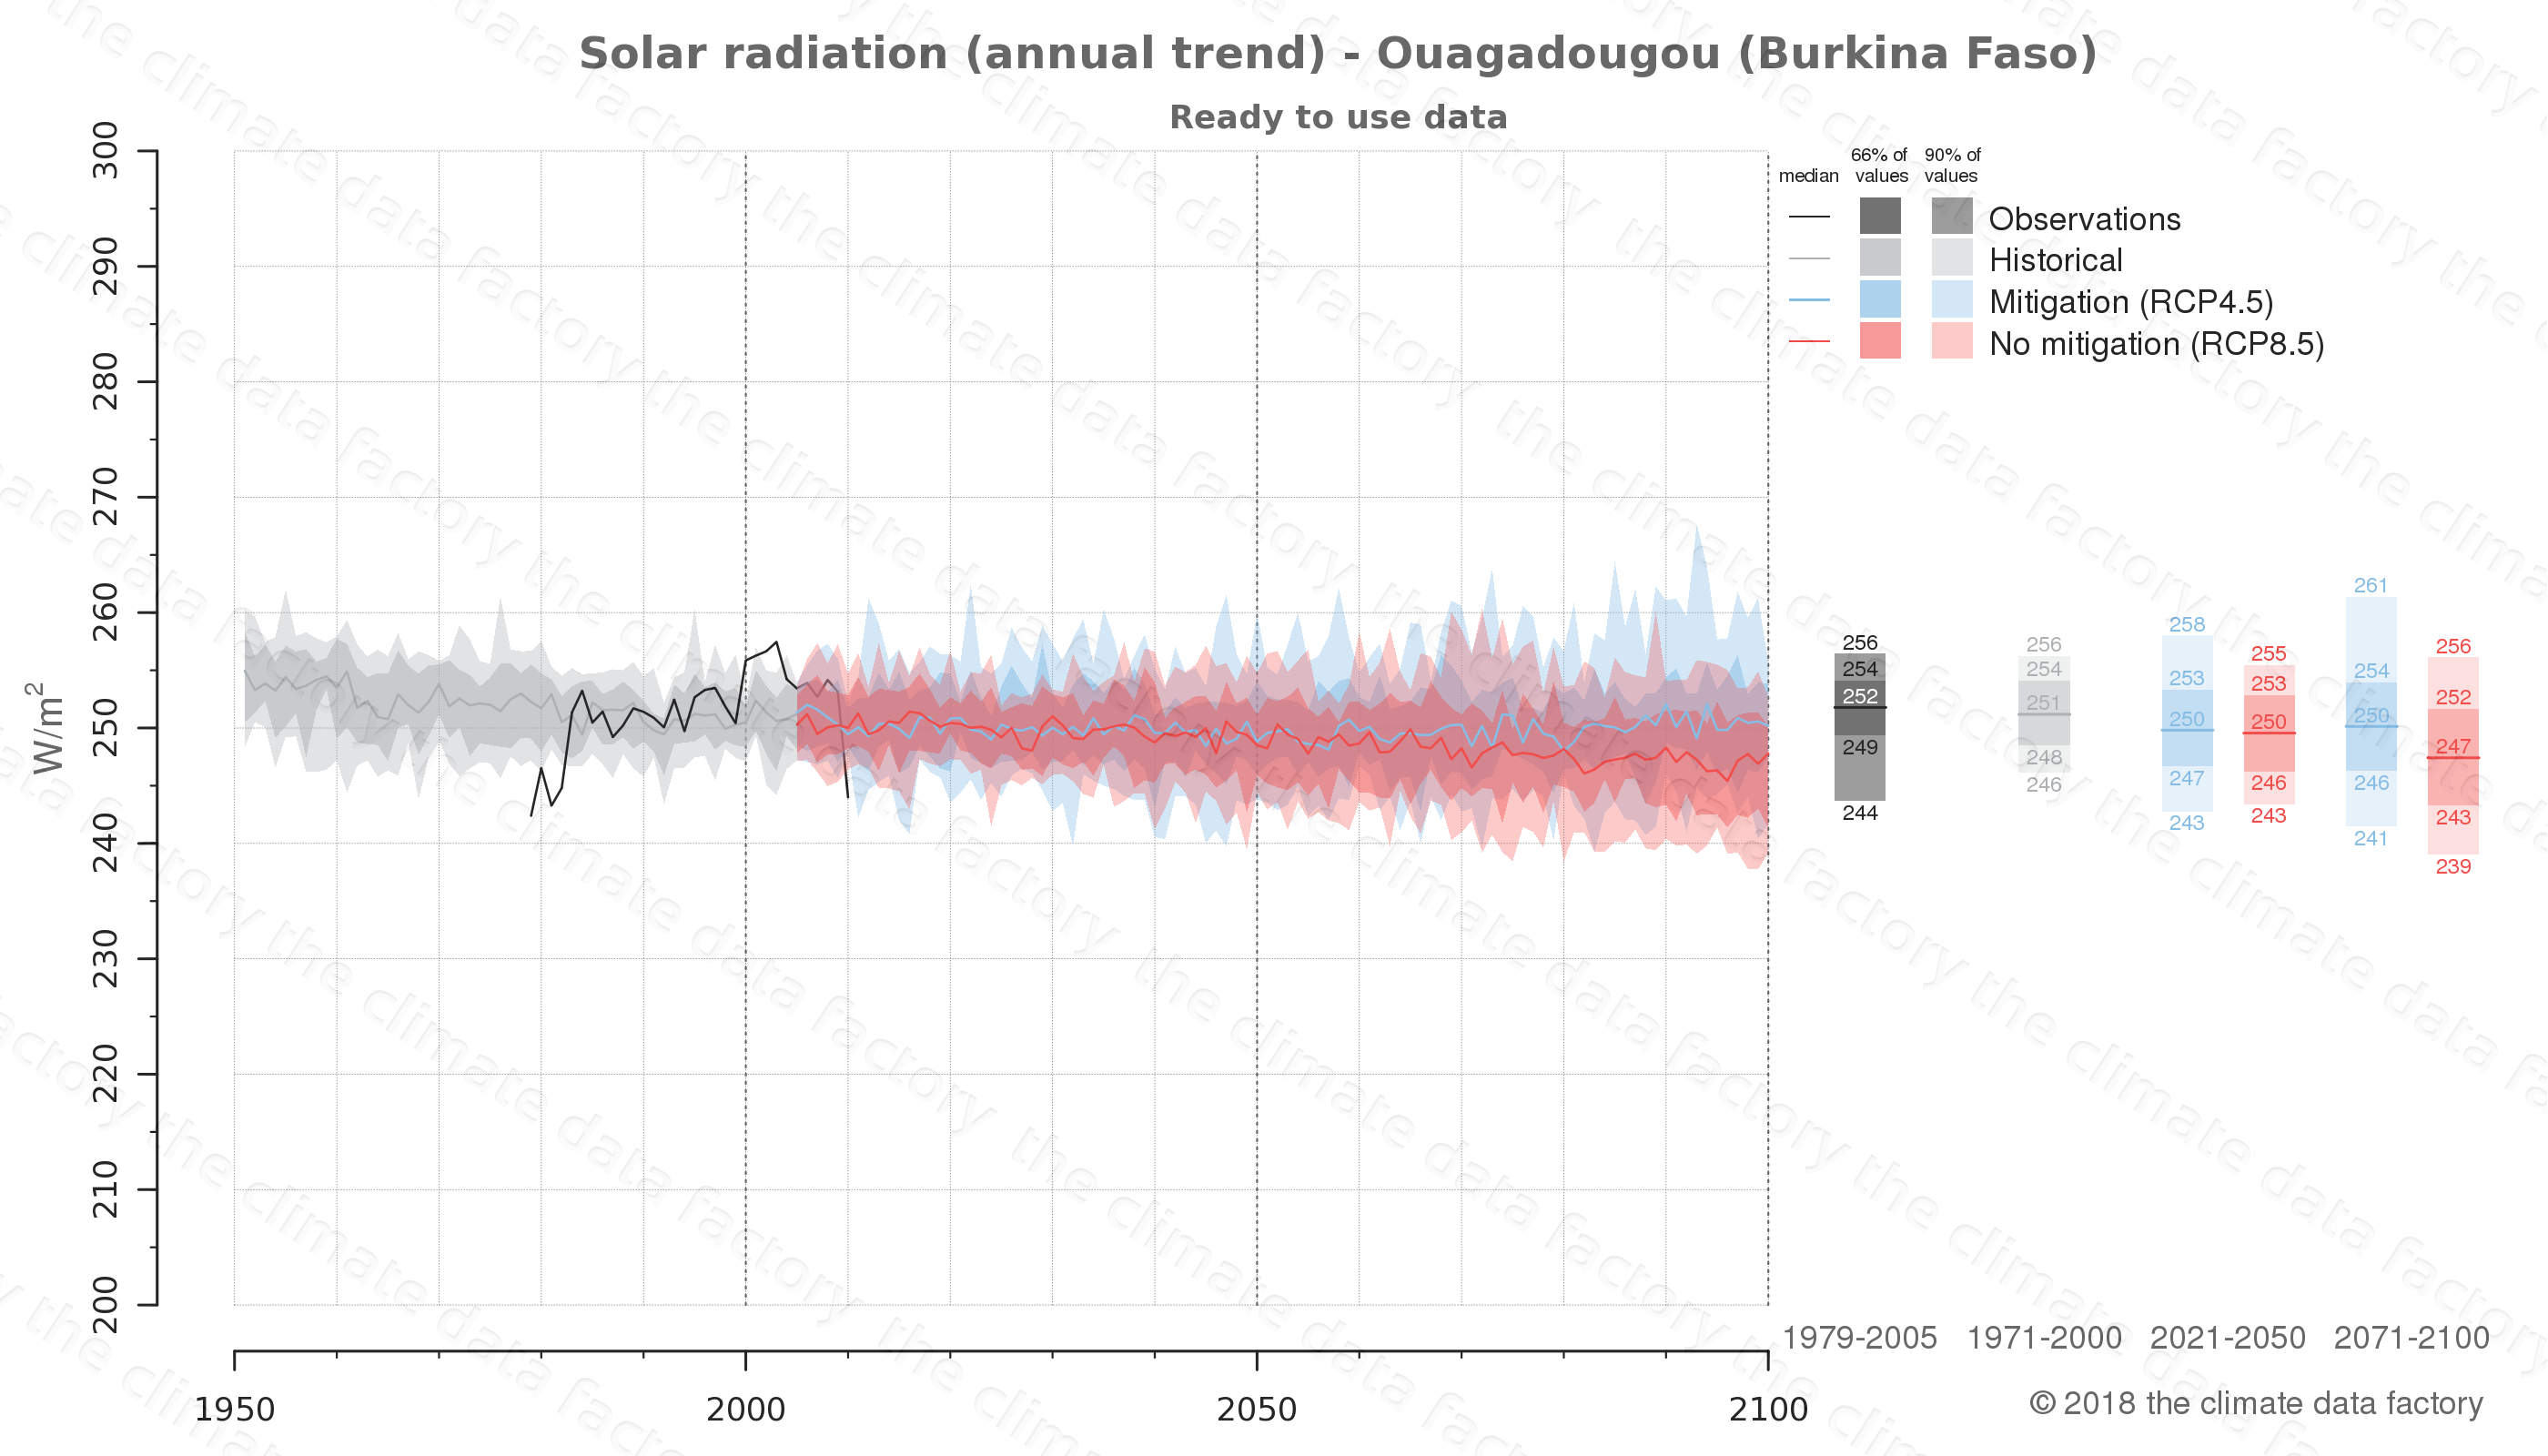 climate change data policy adaptation climate graph city data solar-radiation ouagadougou burkina faso